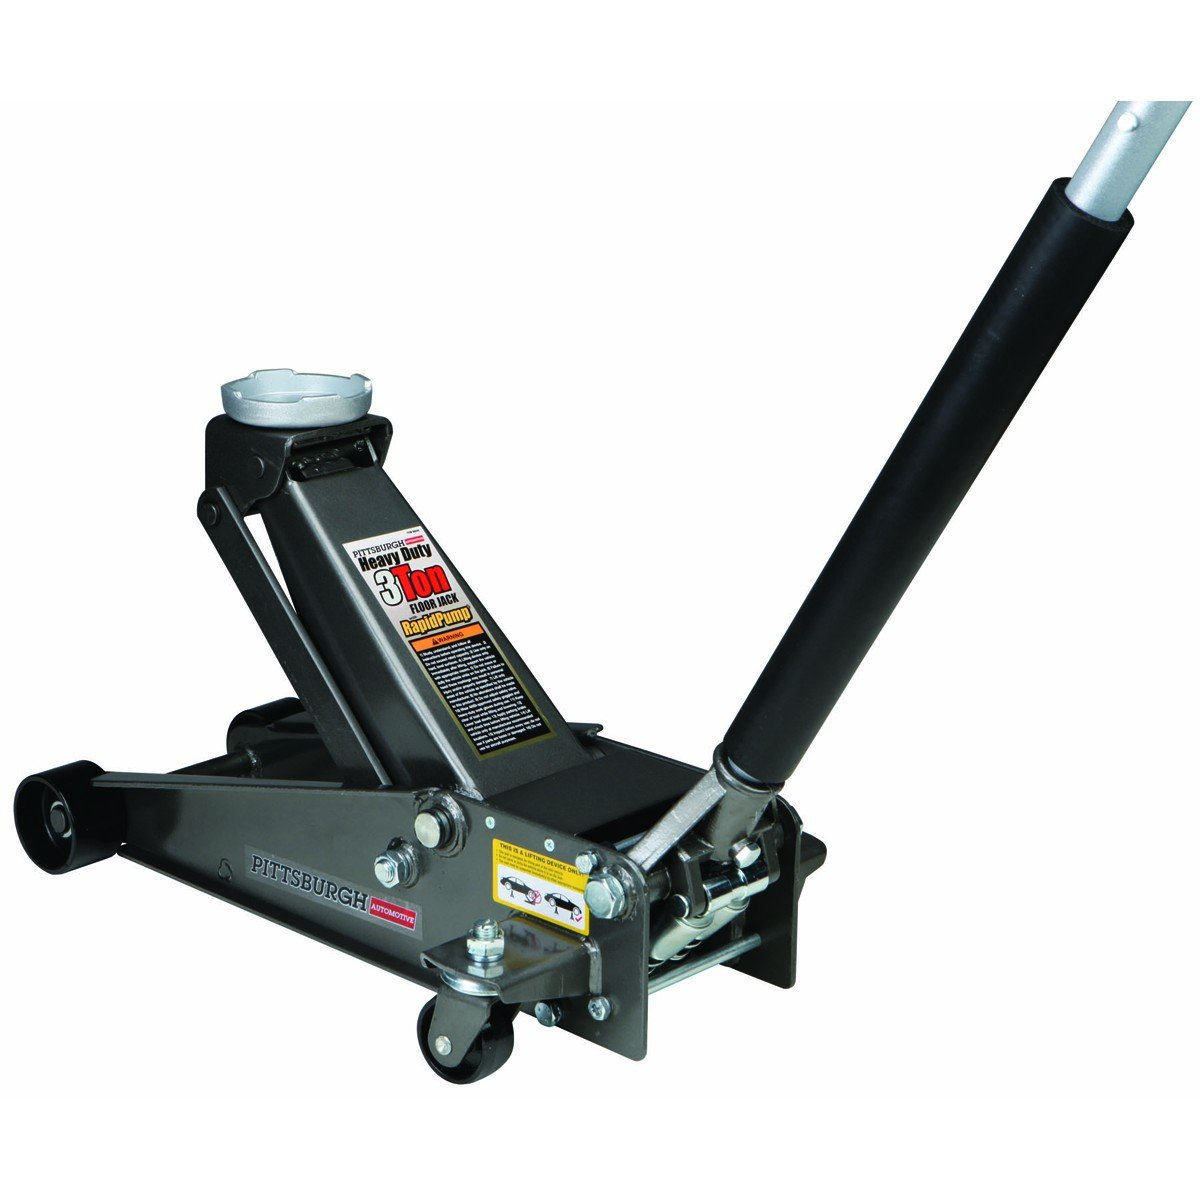 Best Floor Jacks For The Money 2020